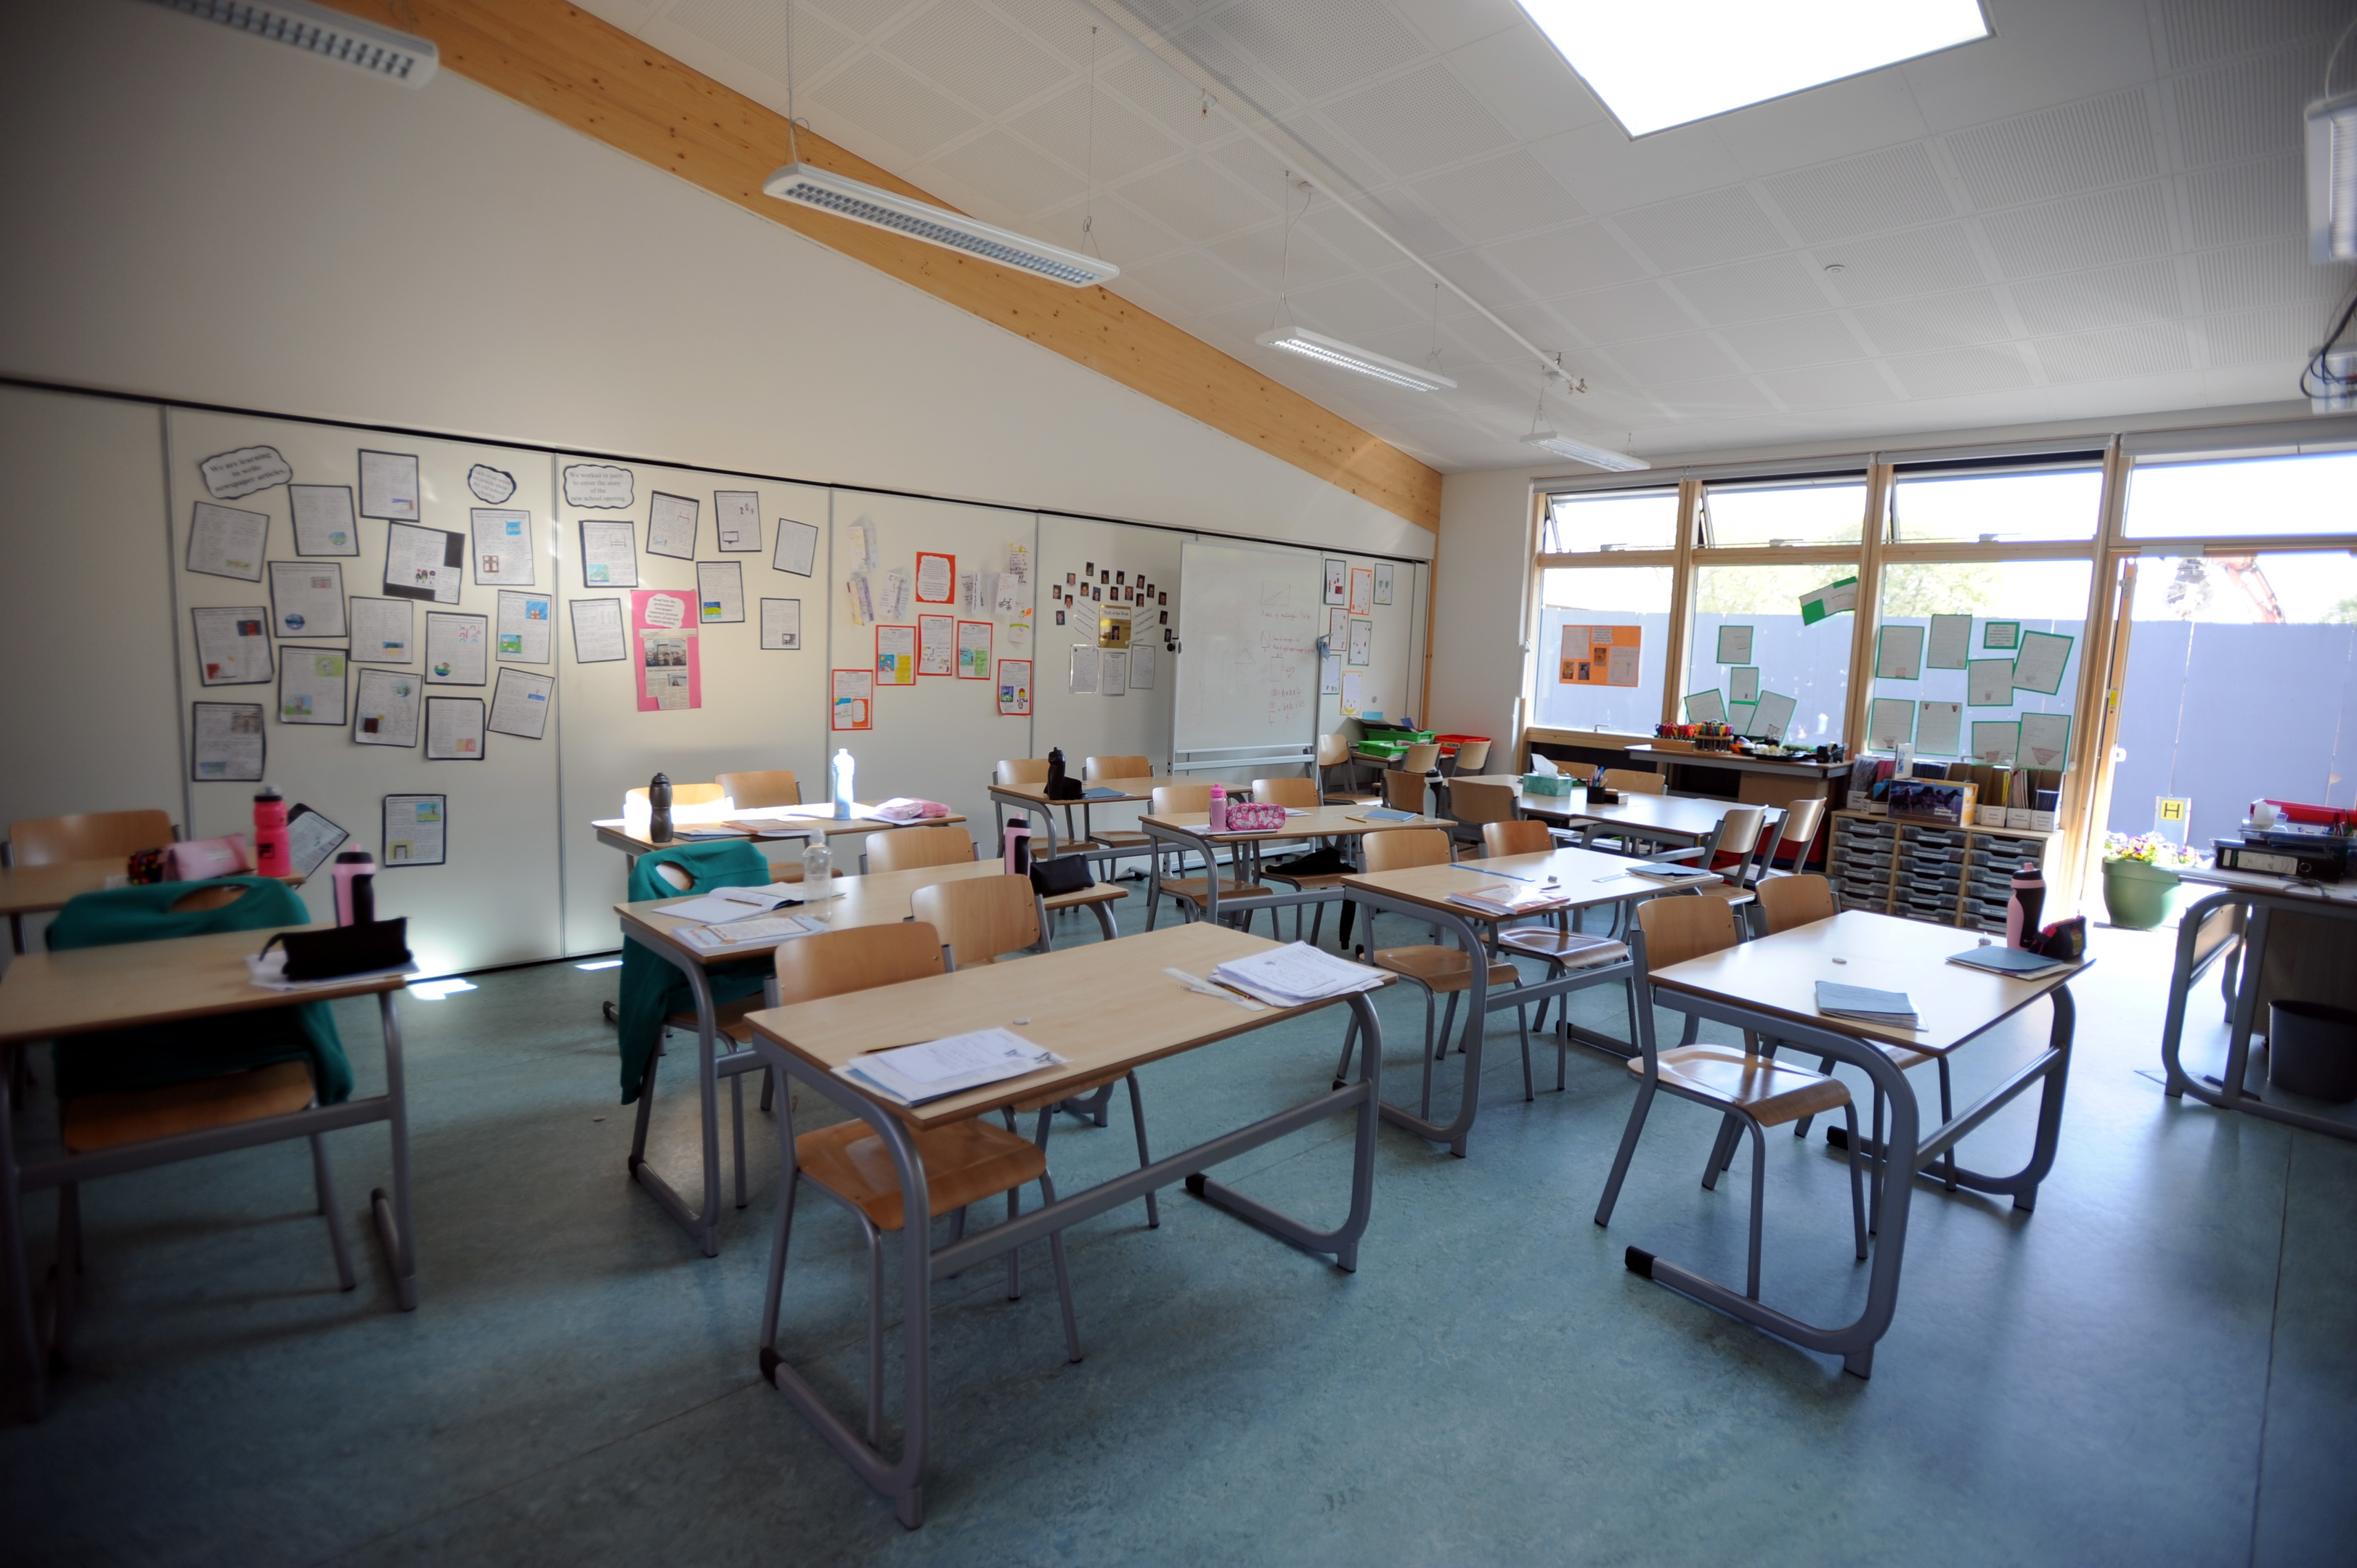 The move comes as Airyhall Primary School is now full to capacity.